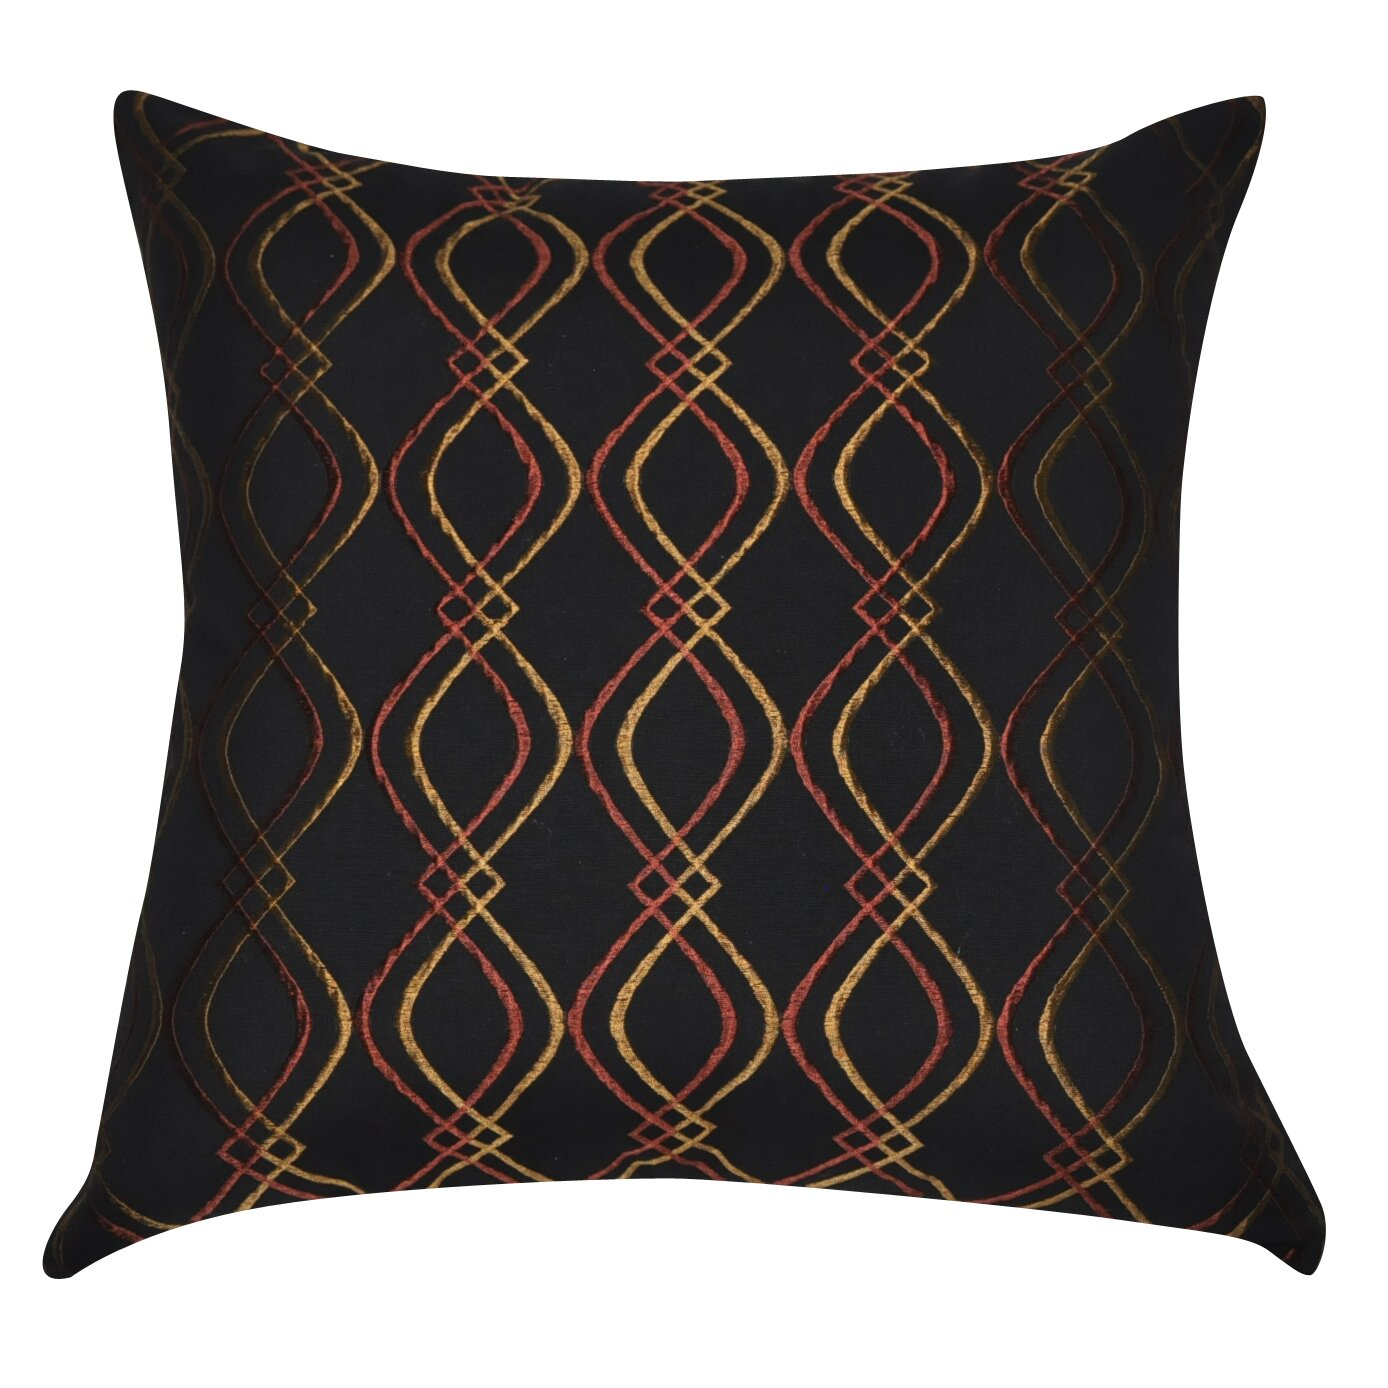 Decorative Pillows And Throws : Loom and Mill Decorative Cotton Throw Pillow & Reviews Wayfair